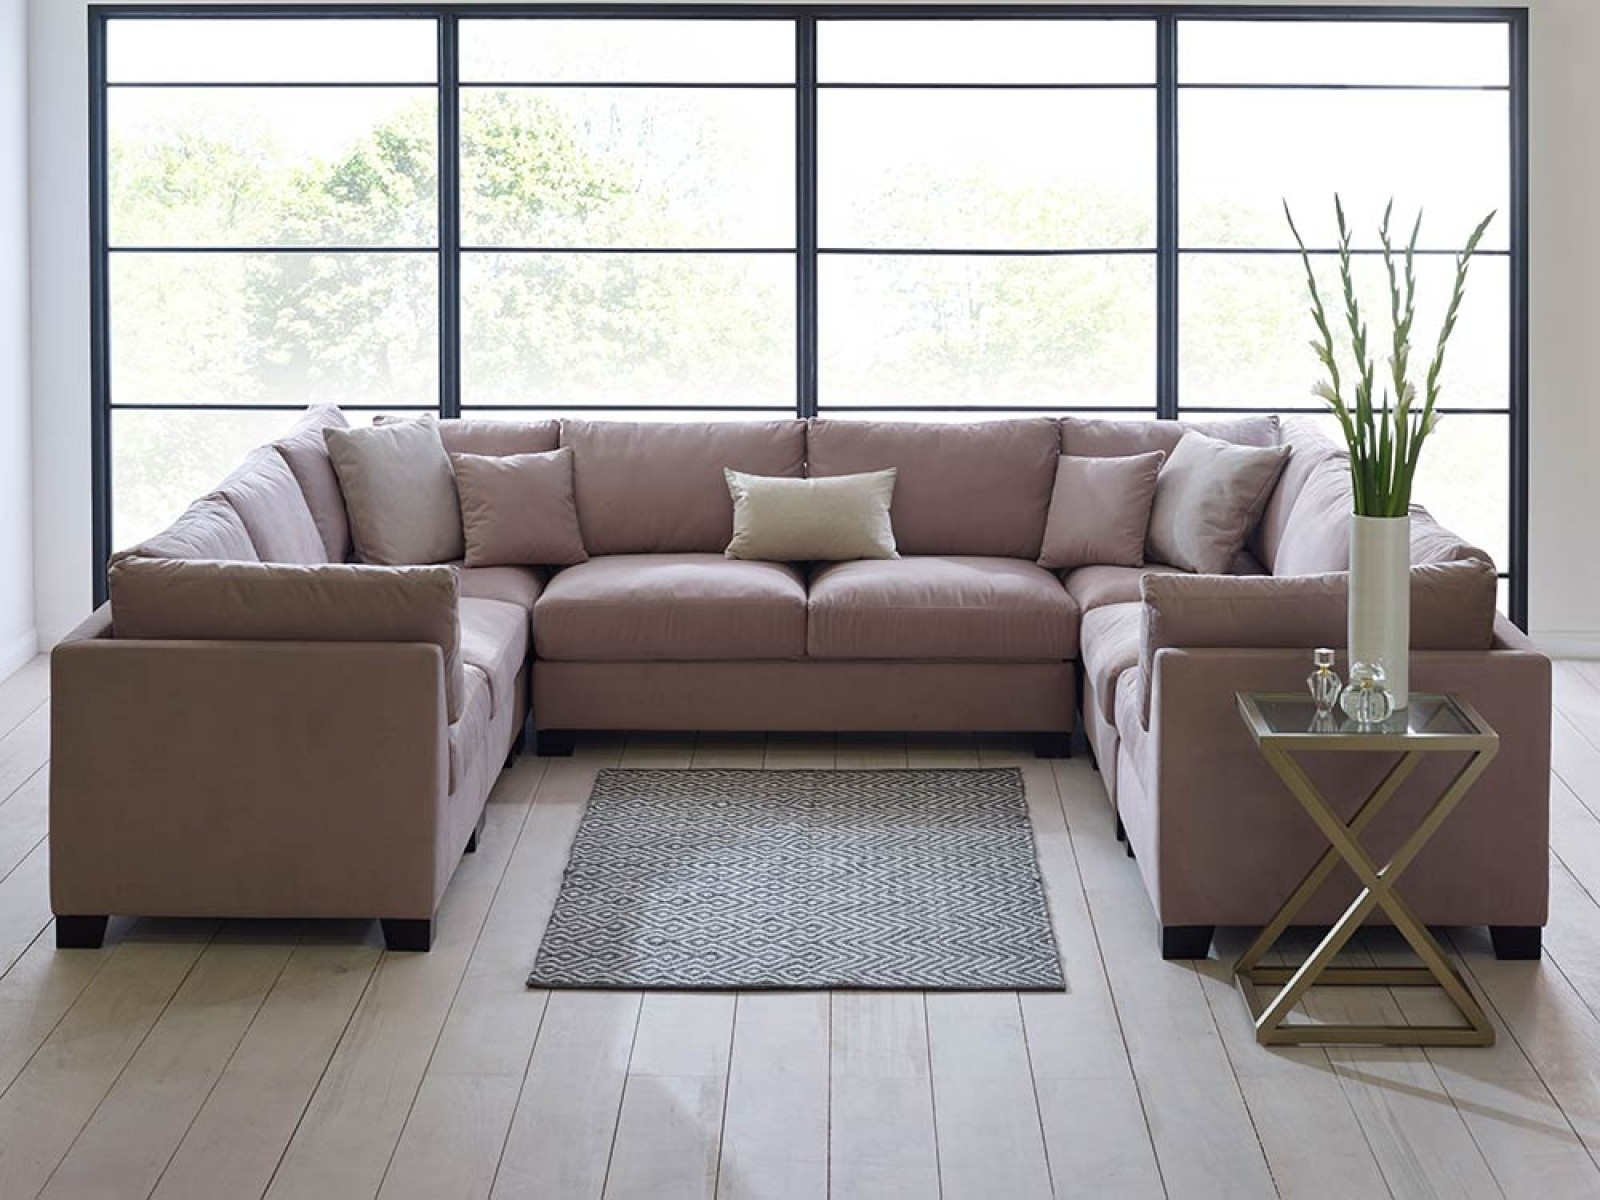 Small U Shaped Sectional Sofas Within Well Known U Shaped Sofa – Google Search (View 13 of 15)